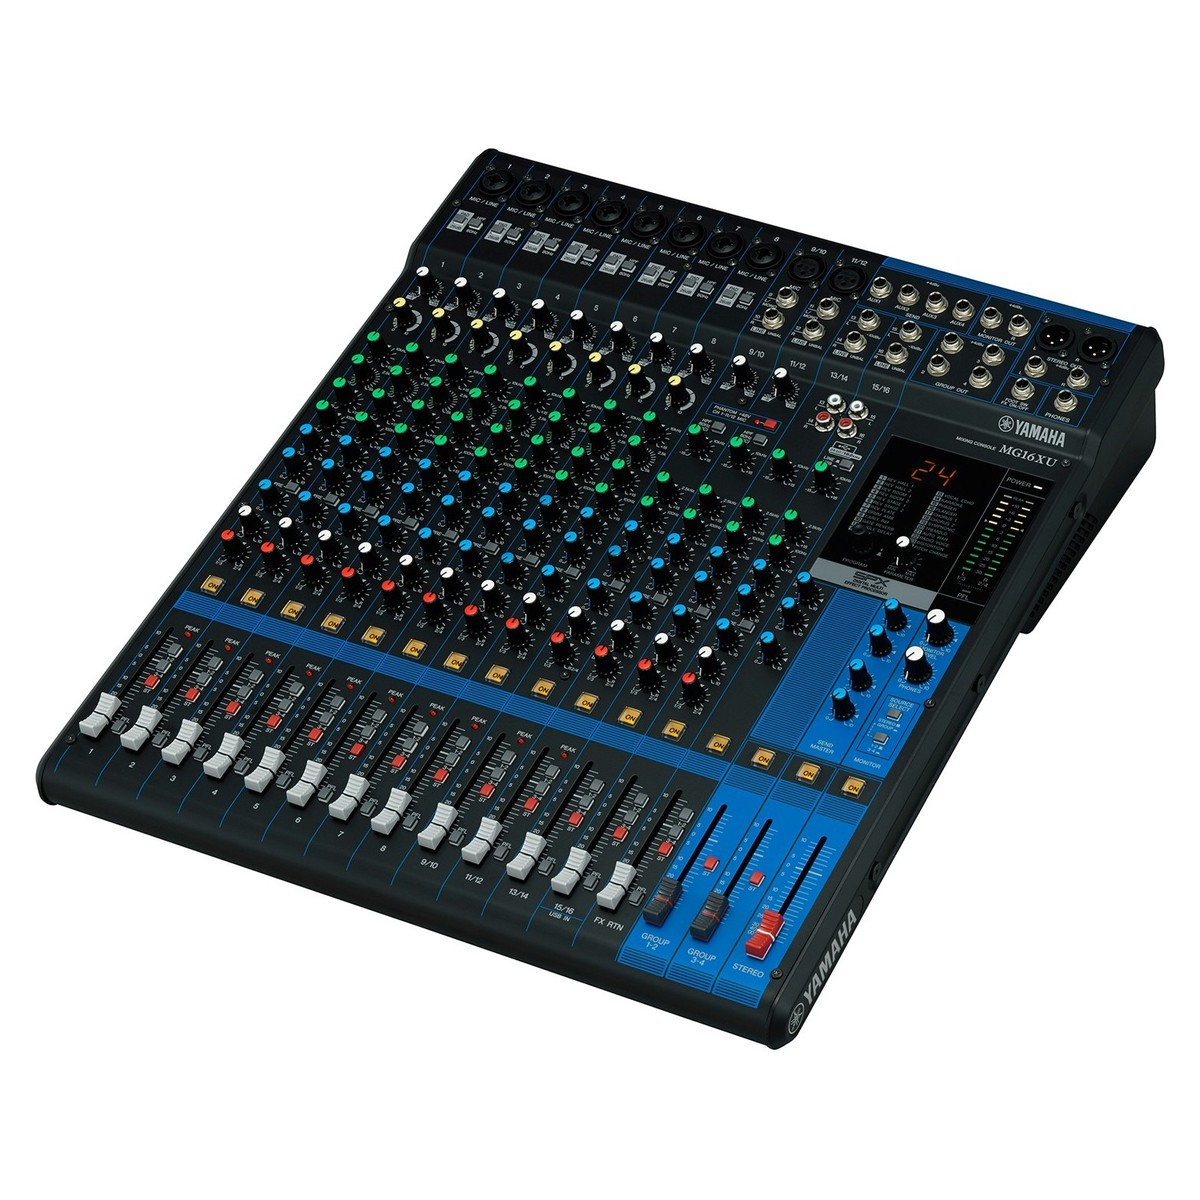 Yamaha mg16xu table de mixage analogique usb gear4music - Table de mixage yamaha usb ...